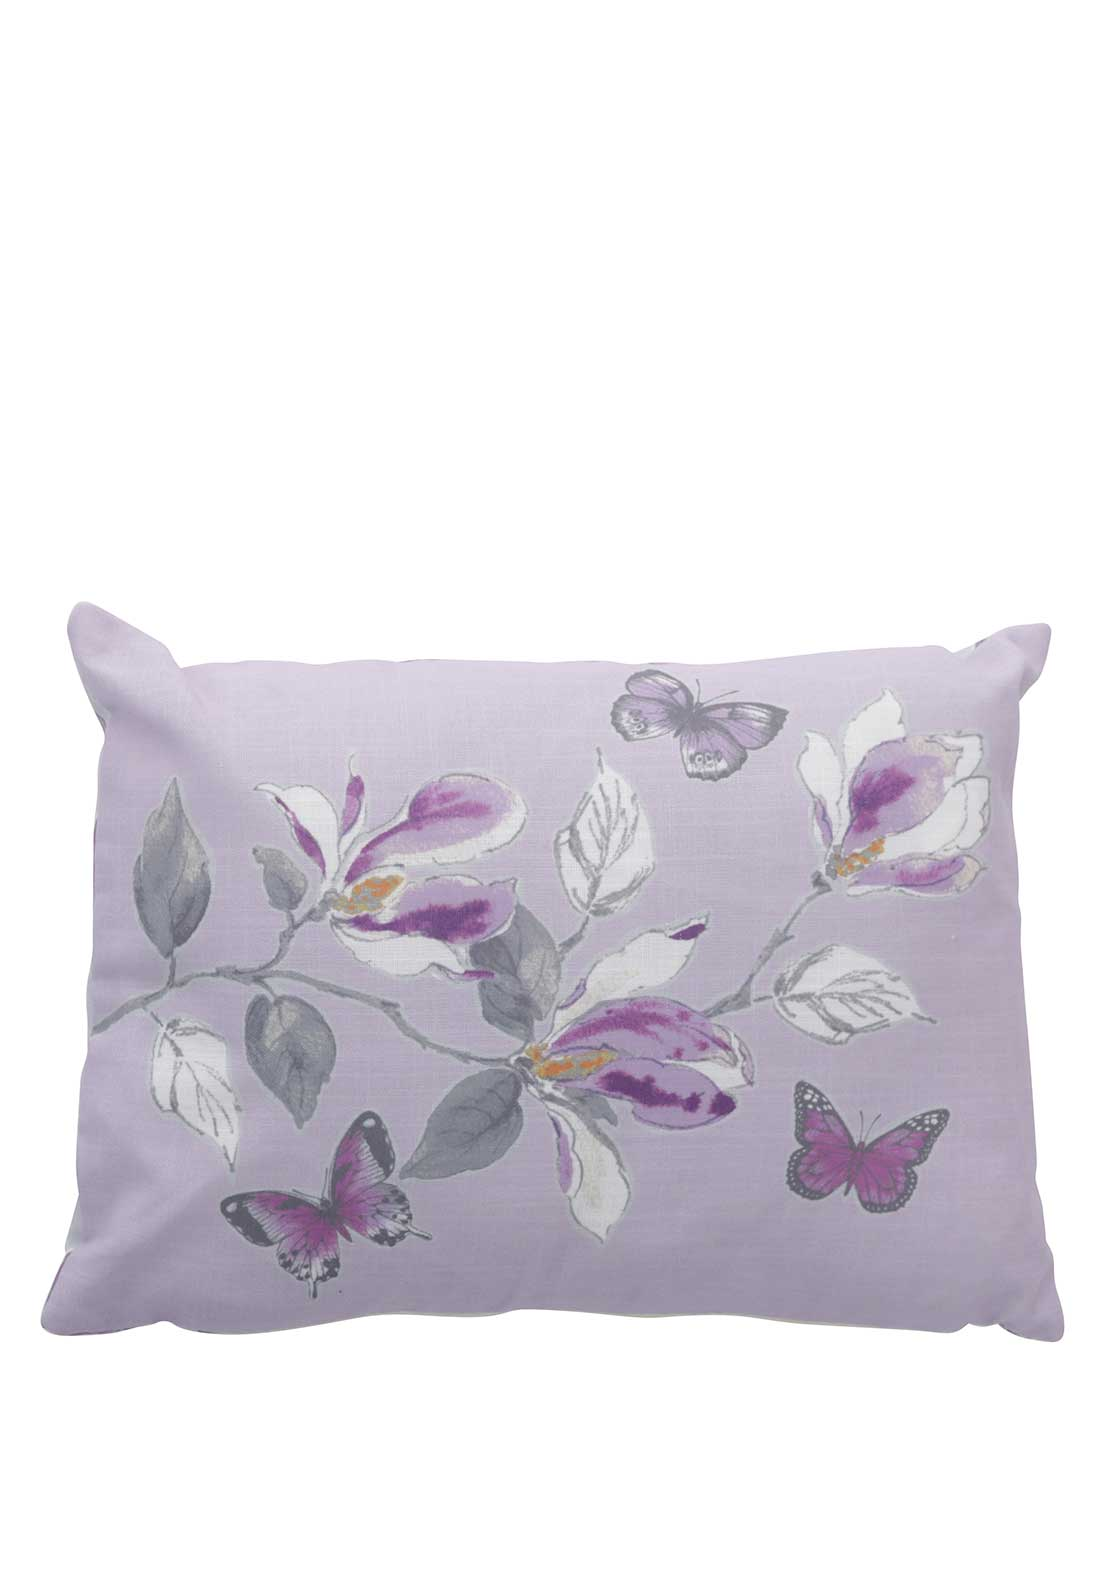 Appletree Sabille Cushion, Mauve Purple